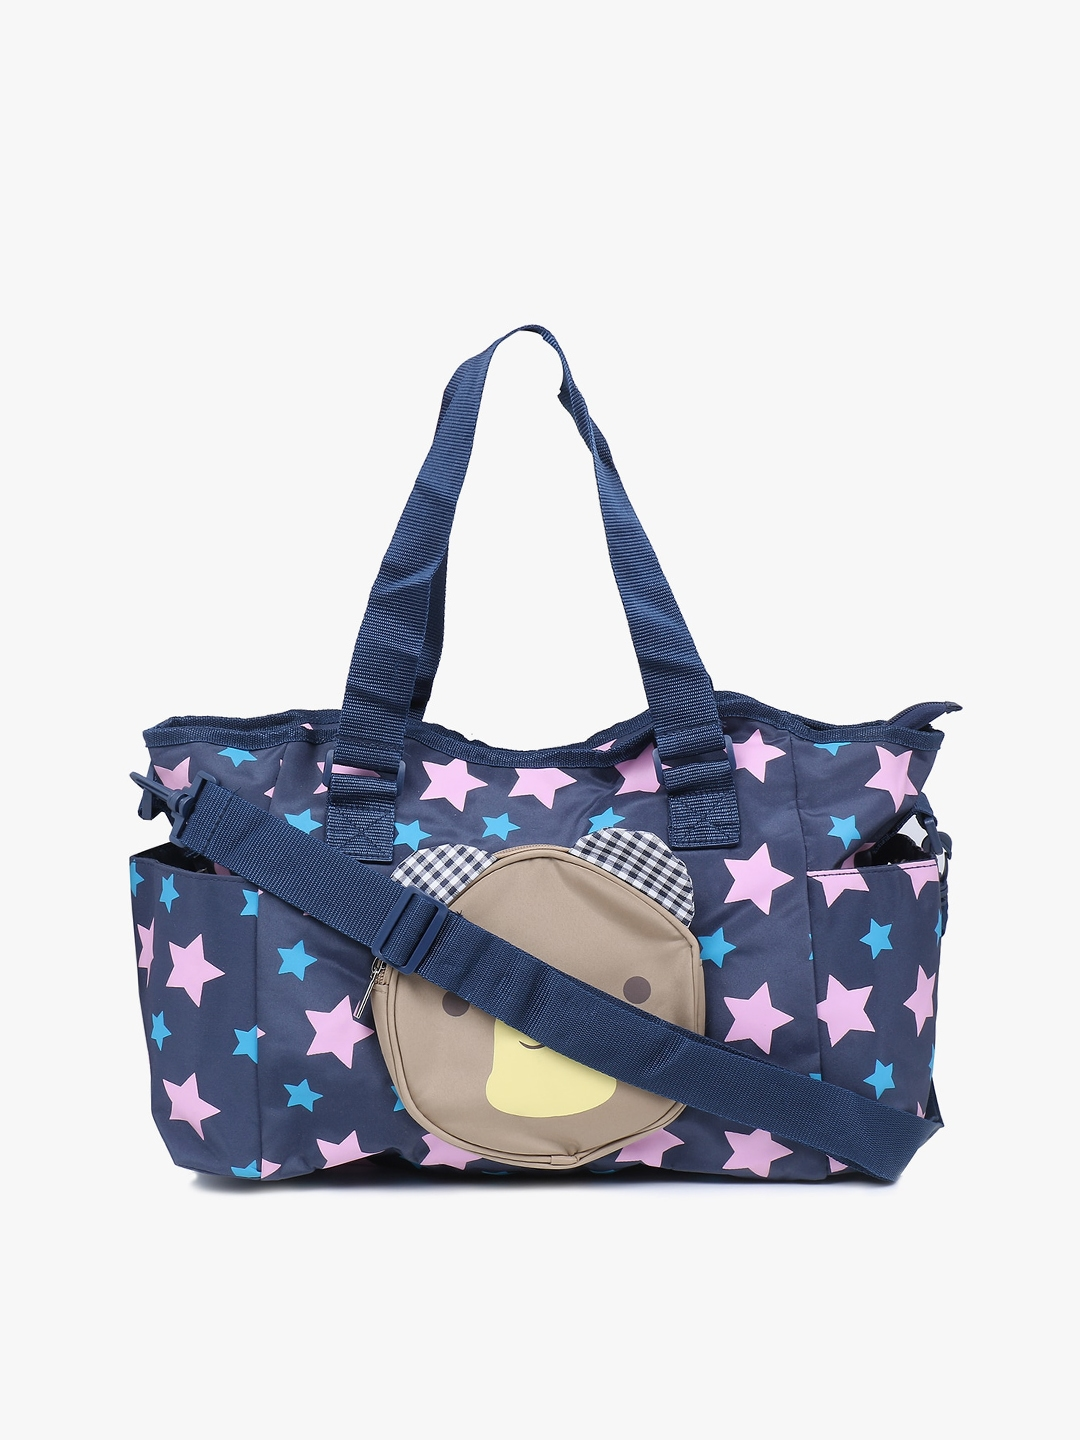 POKORY Blue Baby Diaper Changing Shoulder Bag with pockets